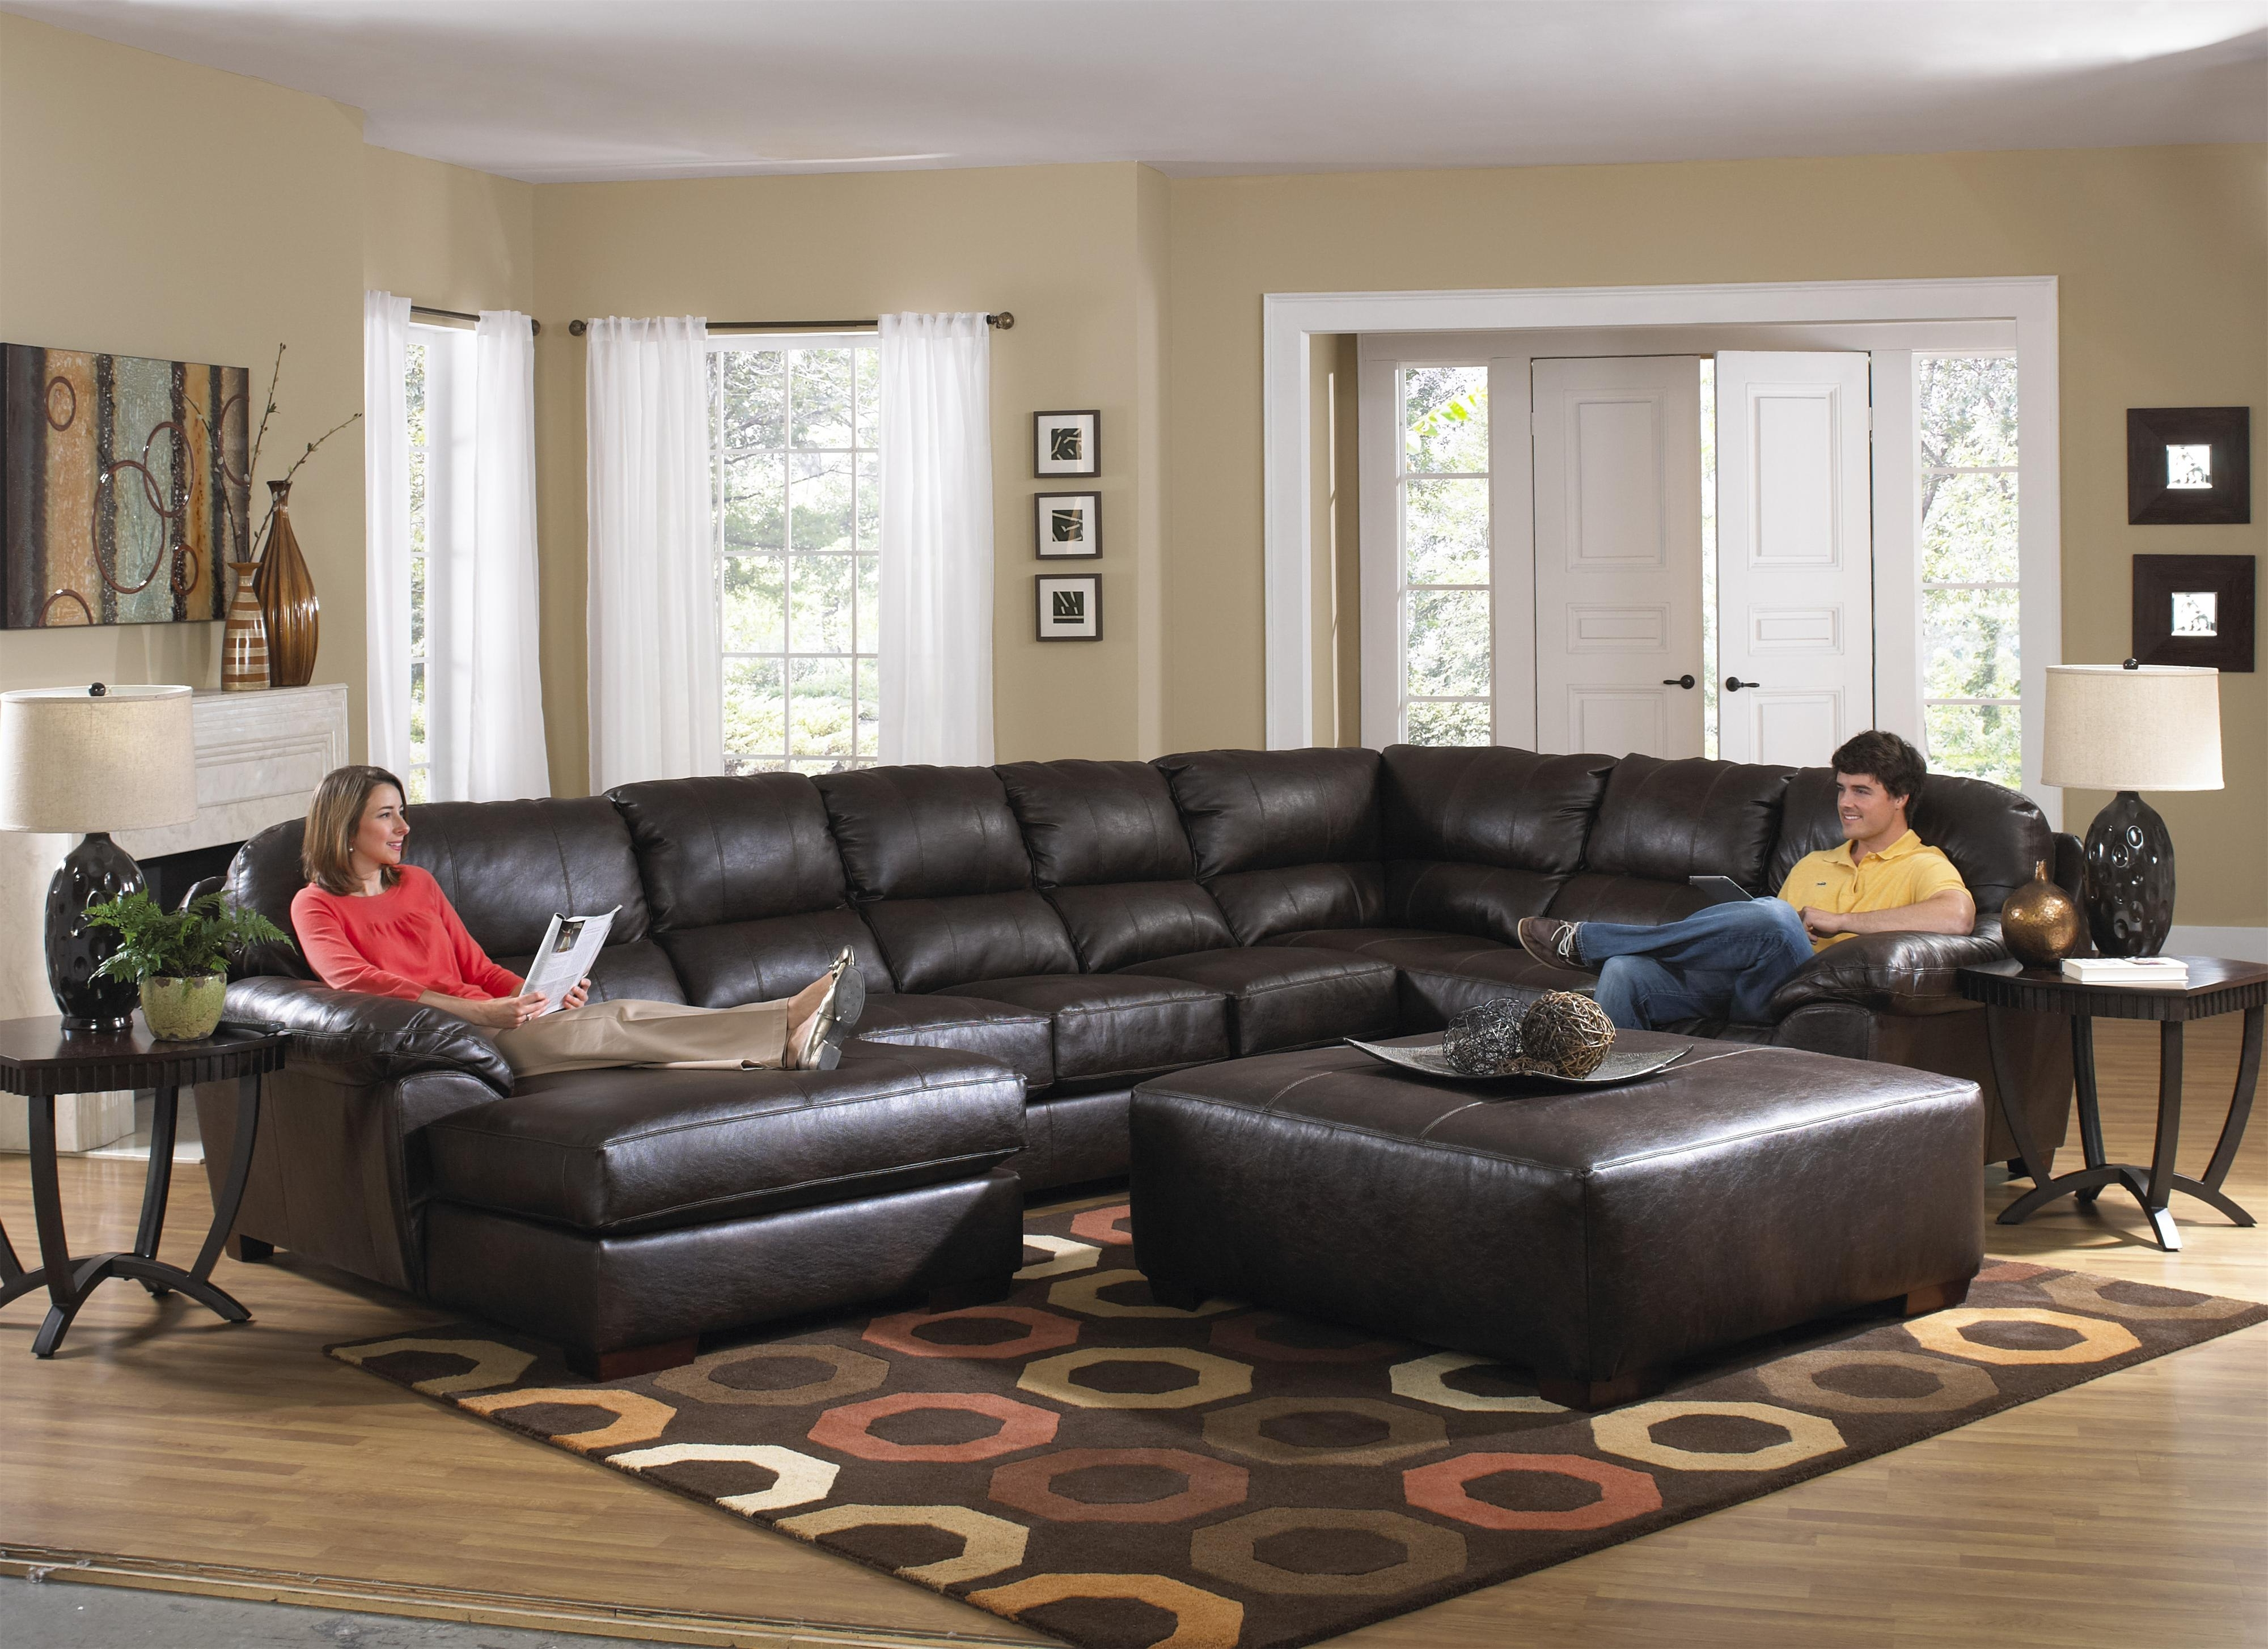 Oversized Couches Ashley Furniture Extra Deep Couch Oversized Throughout 2018 Long Sectional Sofas With Chaise (View 17 of 20)